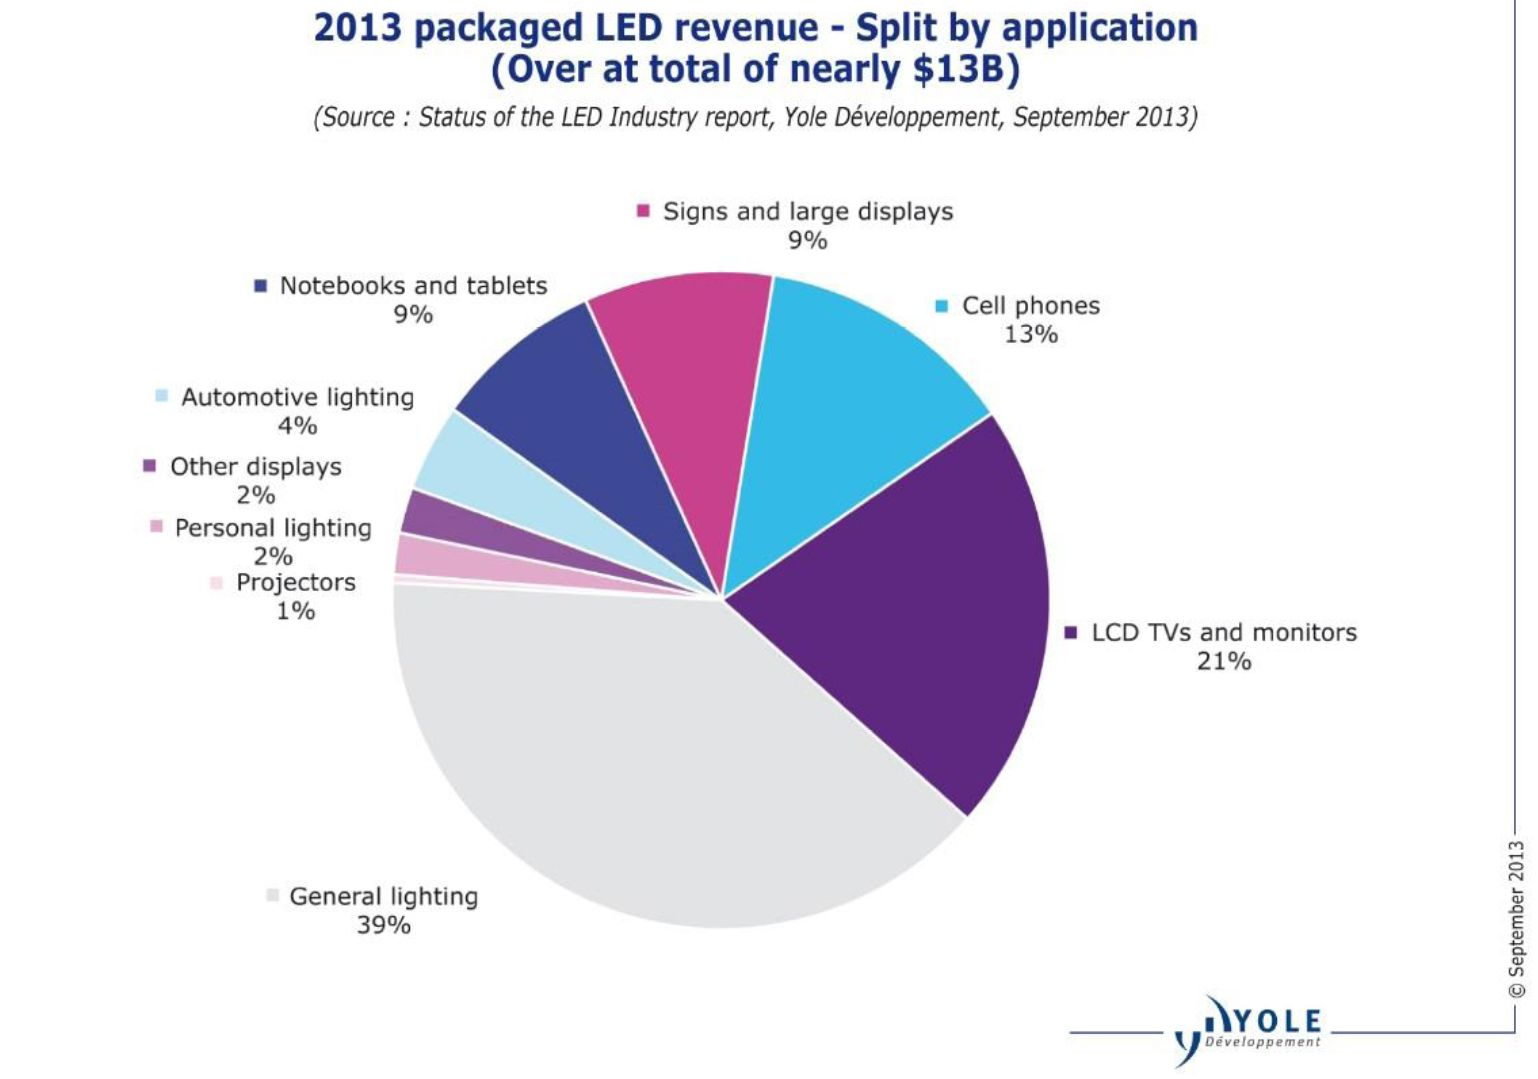 Led Lighting Prices Low Price Leds Accelerate Technology Adoption Into General